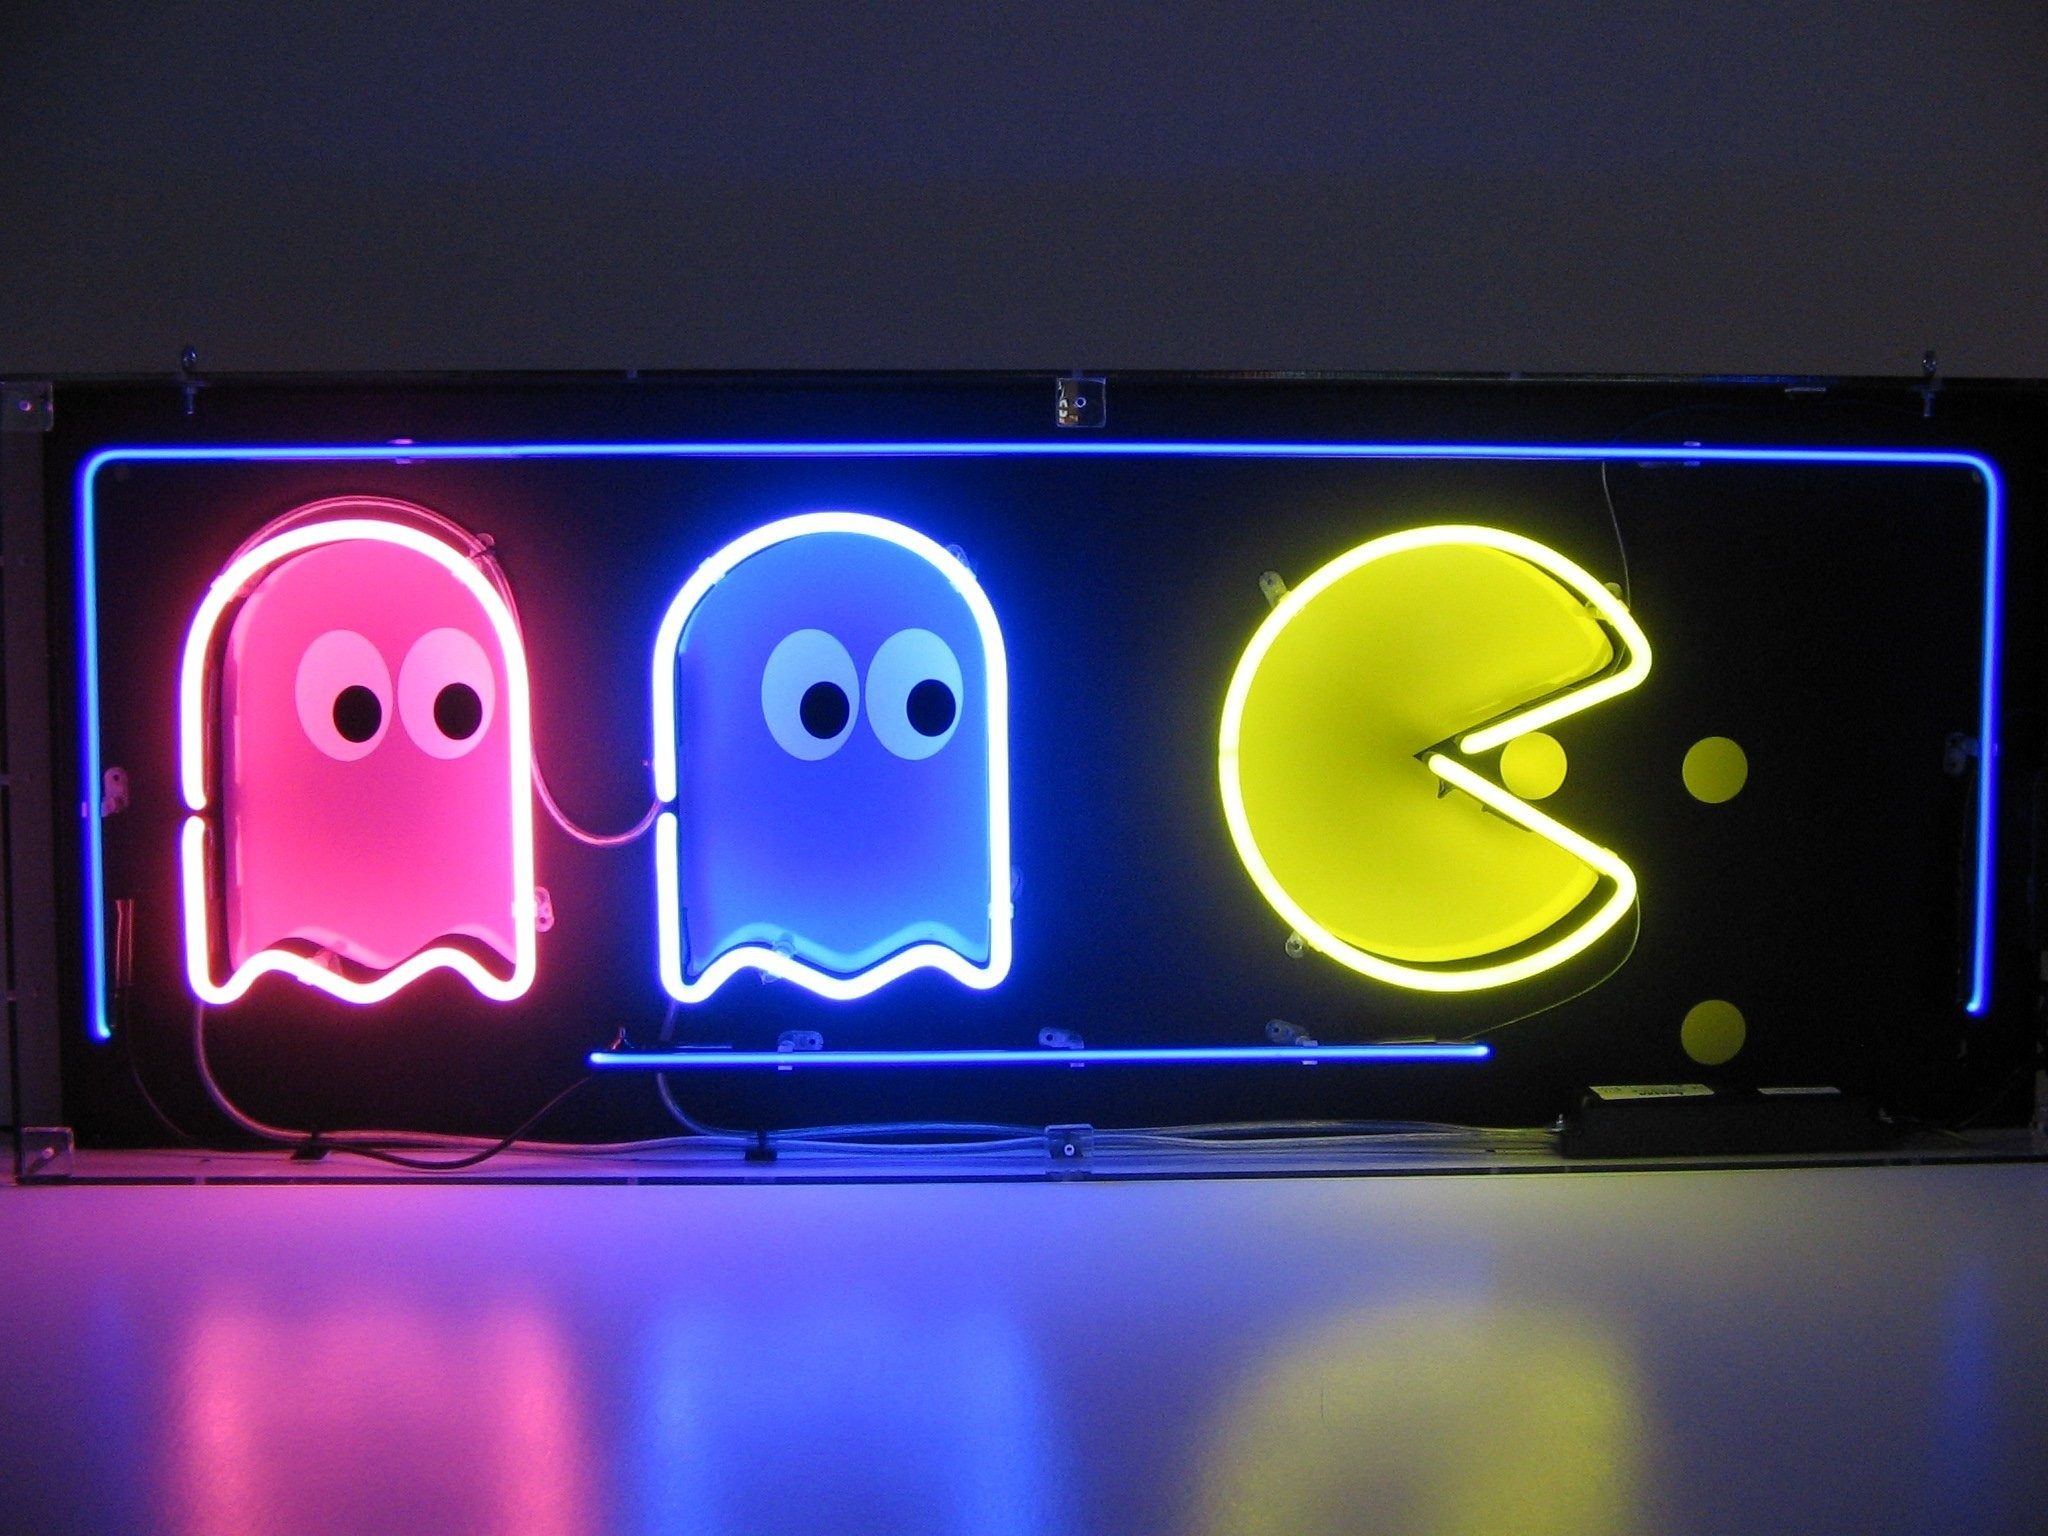 Pacman Wallpapers Hd Wallpaper Collections 4kwallpaper Wiki